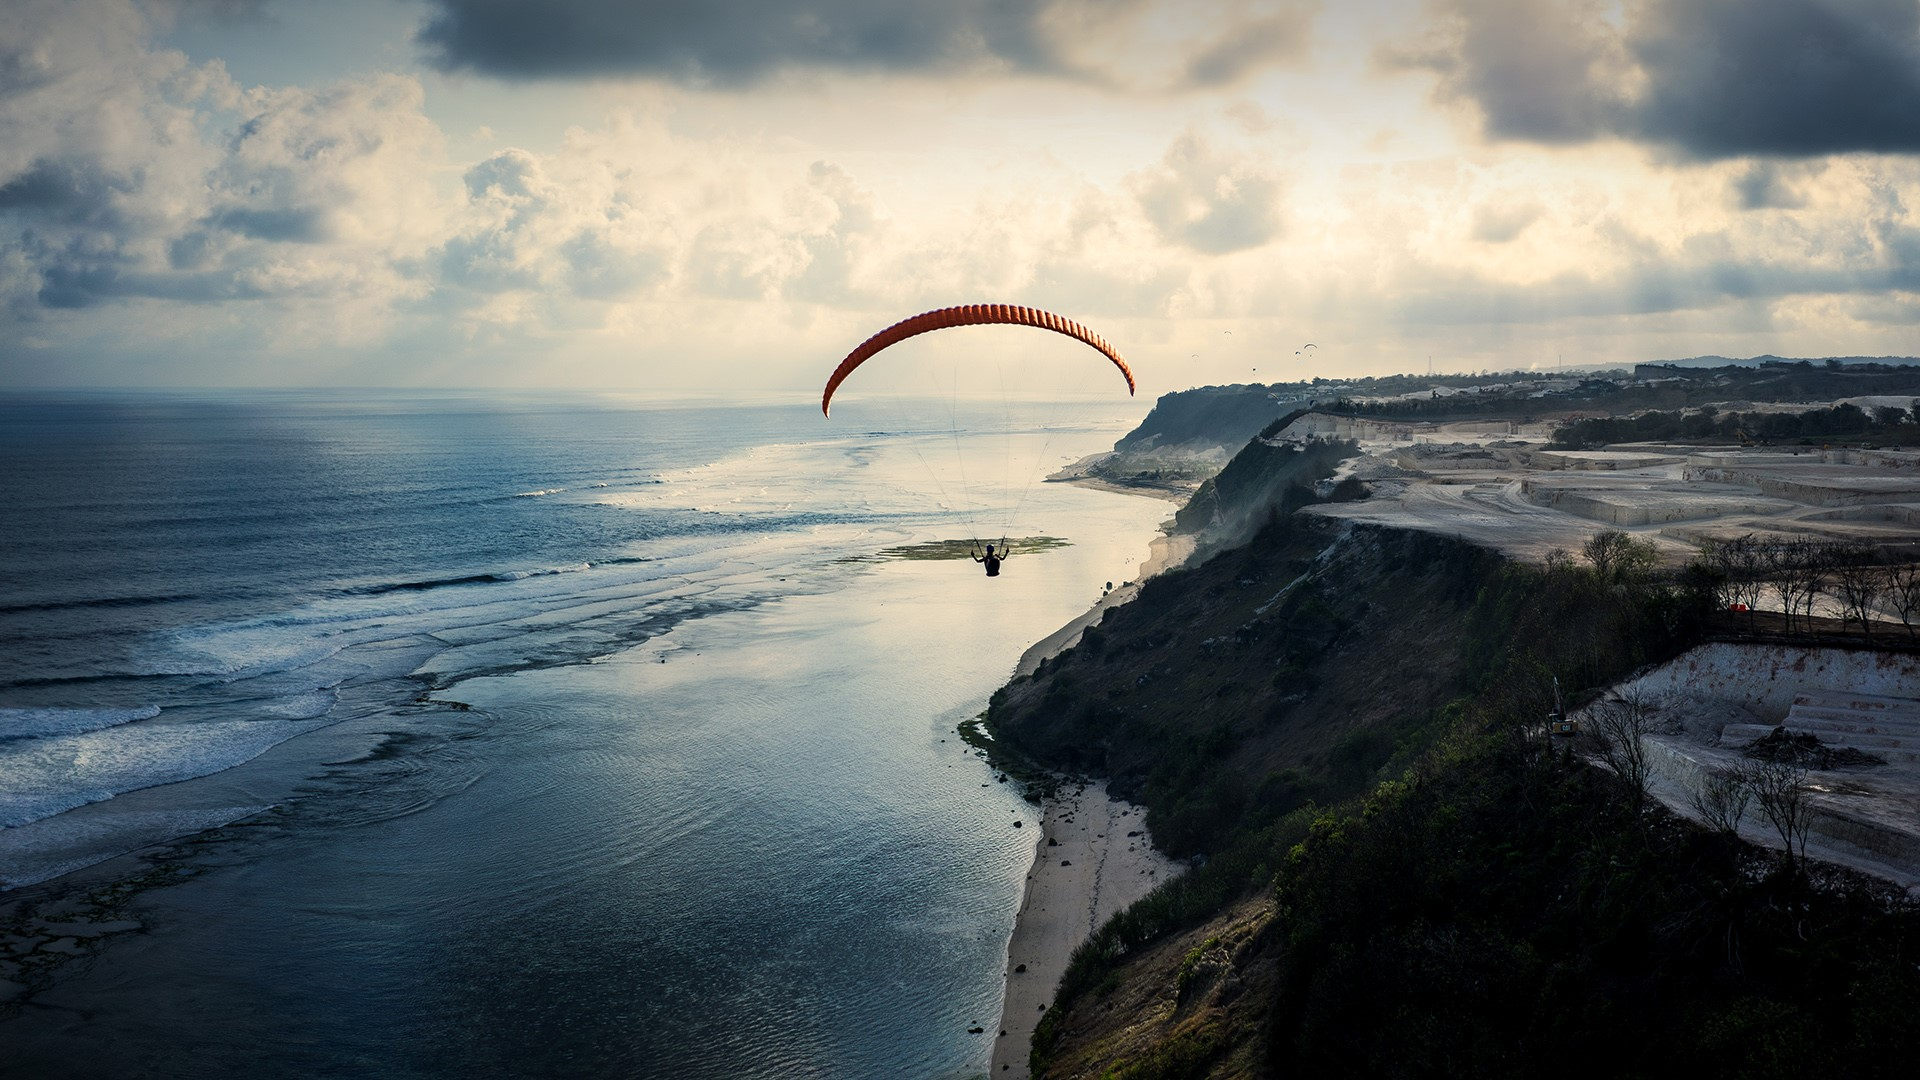 Swing Paraglider At Sunset In Timbis Bali Indonesia